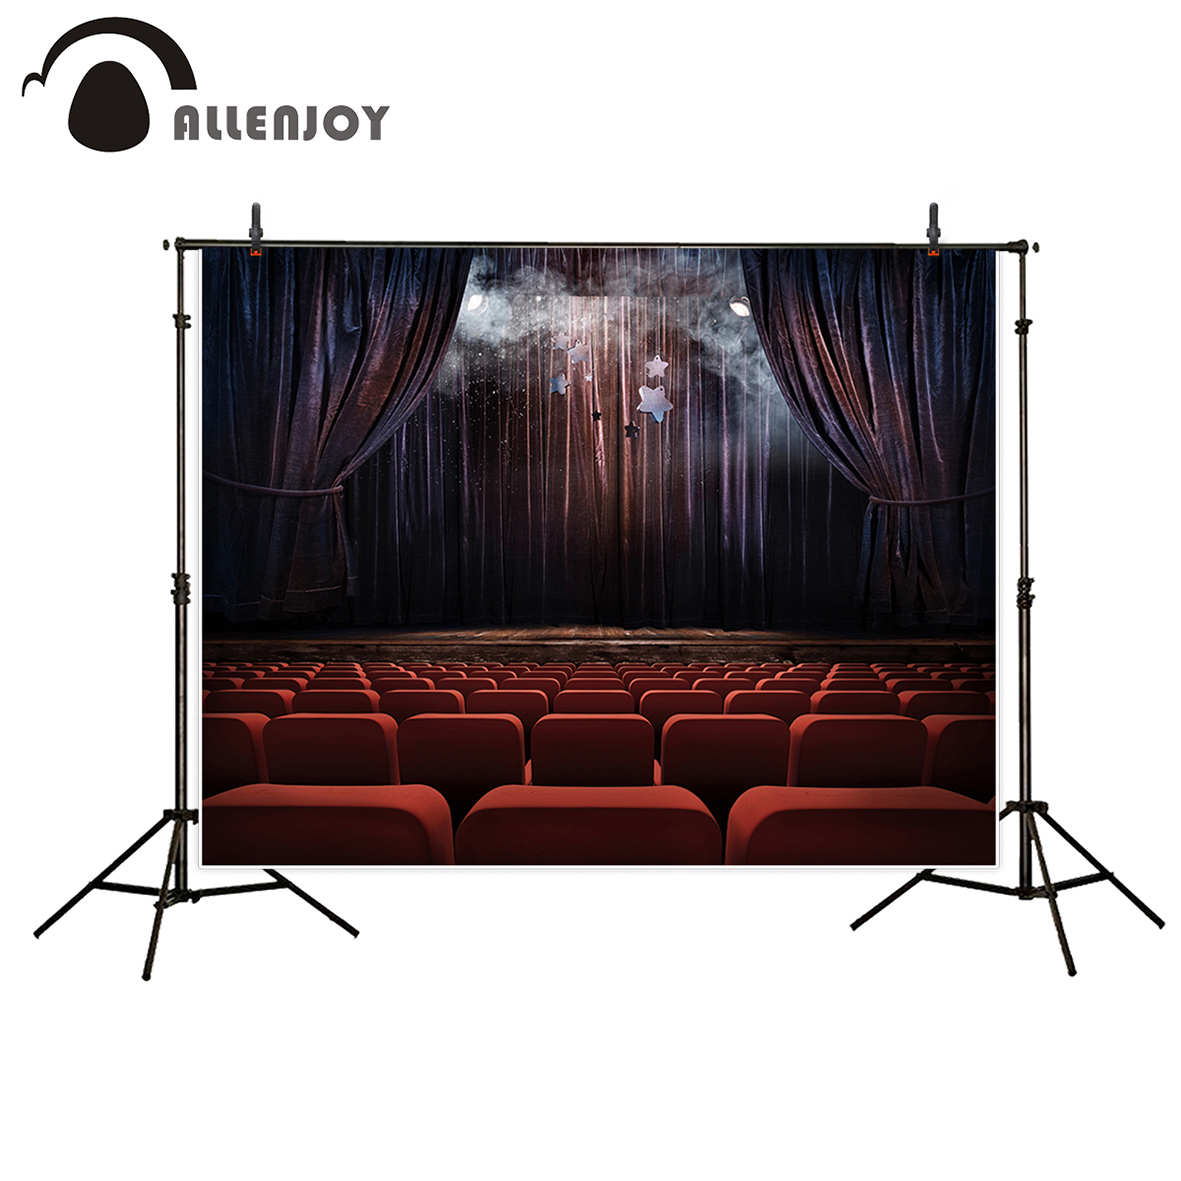 Allenjoy vinyl photographic background Stage curtain theater Light Performance backdrop newborn original design fantasy props allenjoy background for photo studio full moon spider black cat pumpkin halloween backdrop newborn original design fantasy props